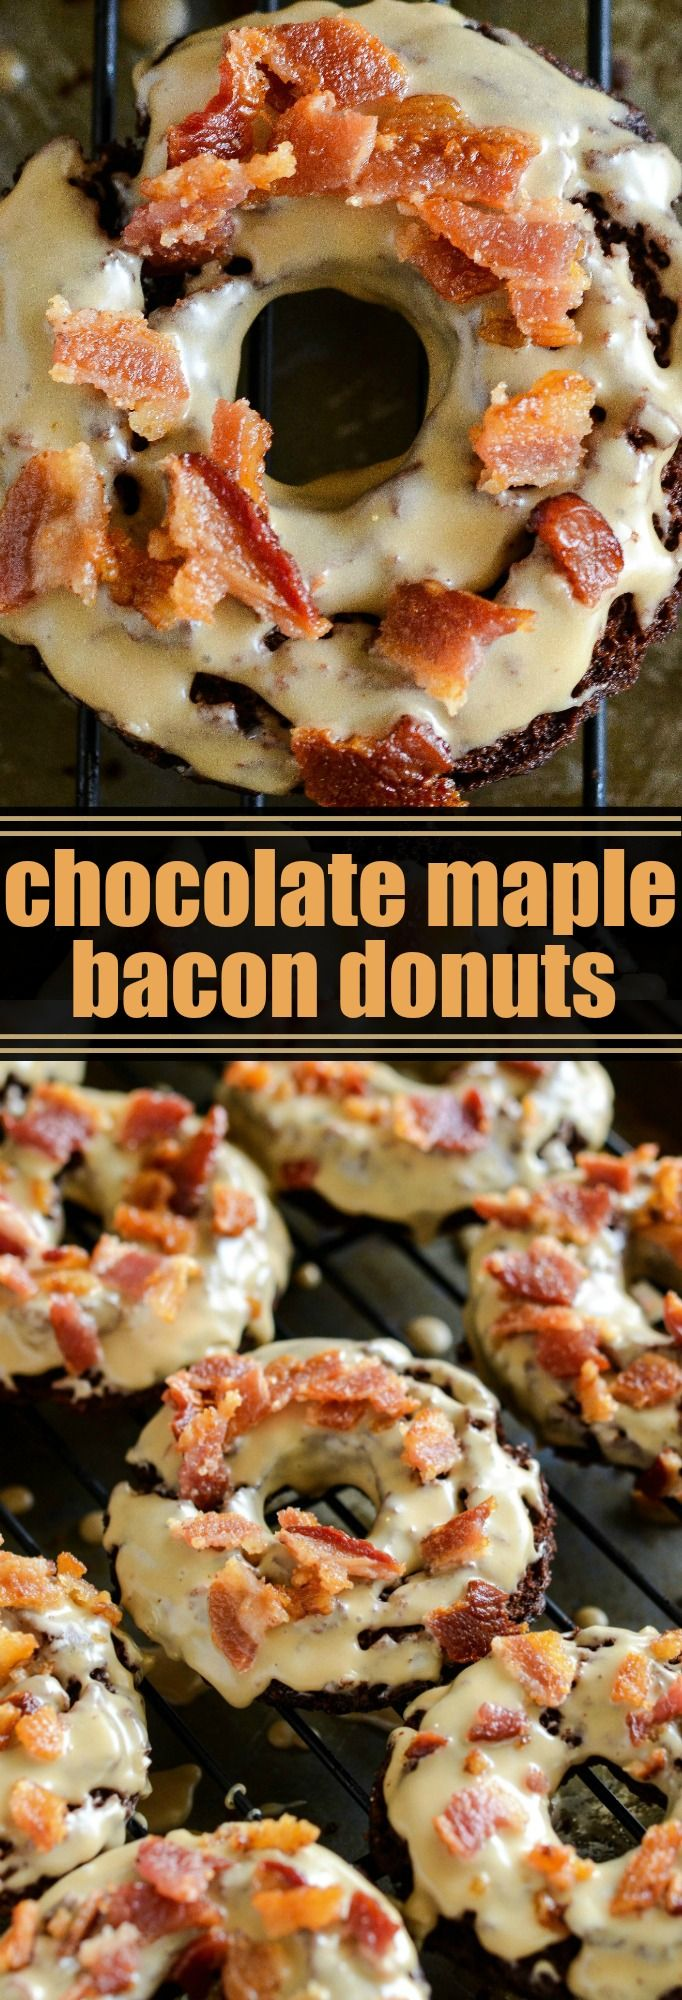 Chocolate Maple Bacon Donuts: old fashioned chocolate donuts, made extra tender with hidden The Greek Gods® Greek-Style Yogurt, are fried and dunked in a maple glaze and topped with bacon! #ad